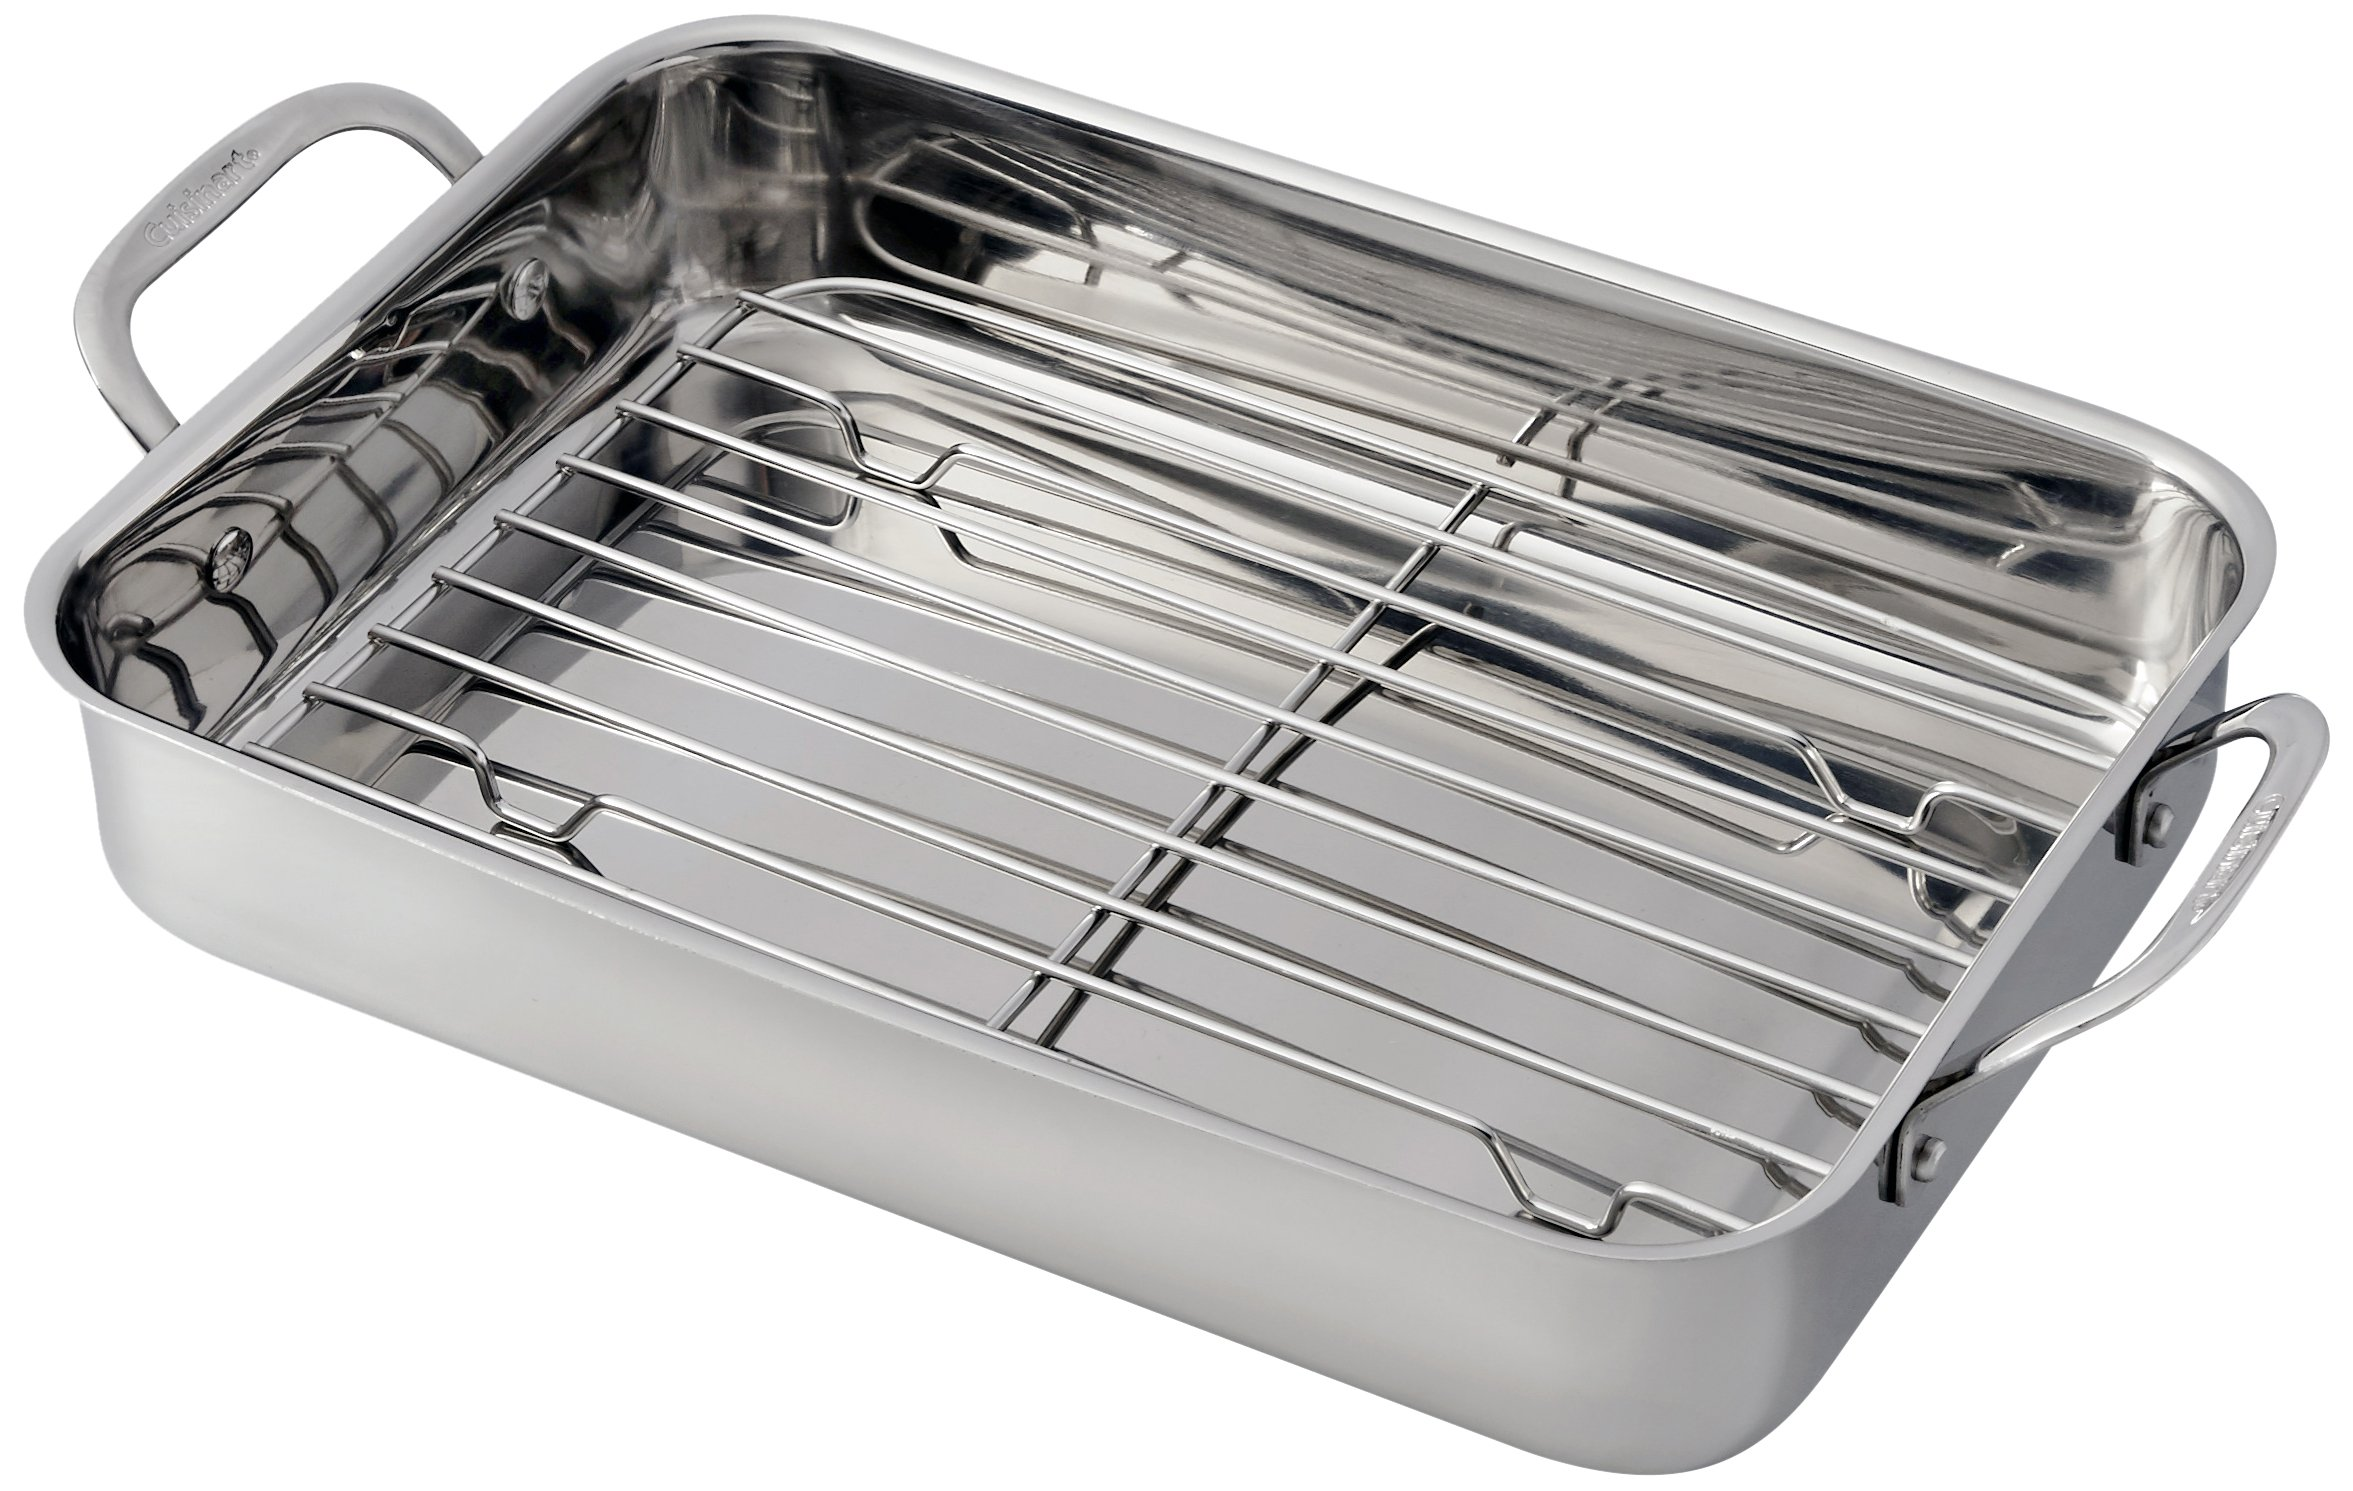 Cuisinart 7117-14RR Lasagna Pan with Stainless Roasting Rack by Cuisinart